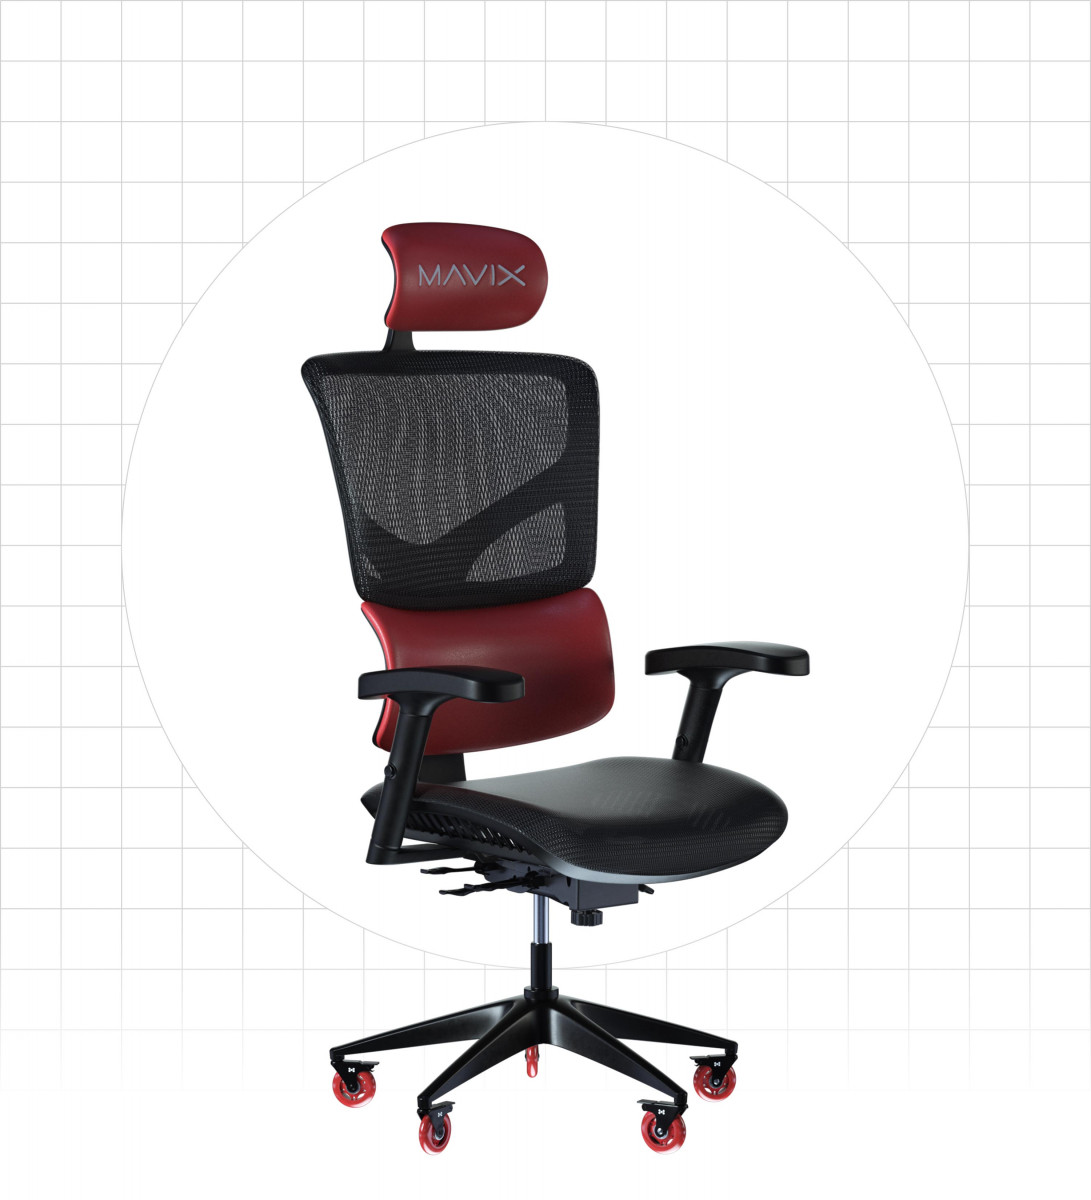 M7 Gaming Chair